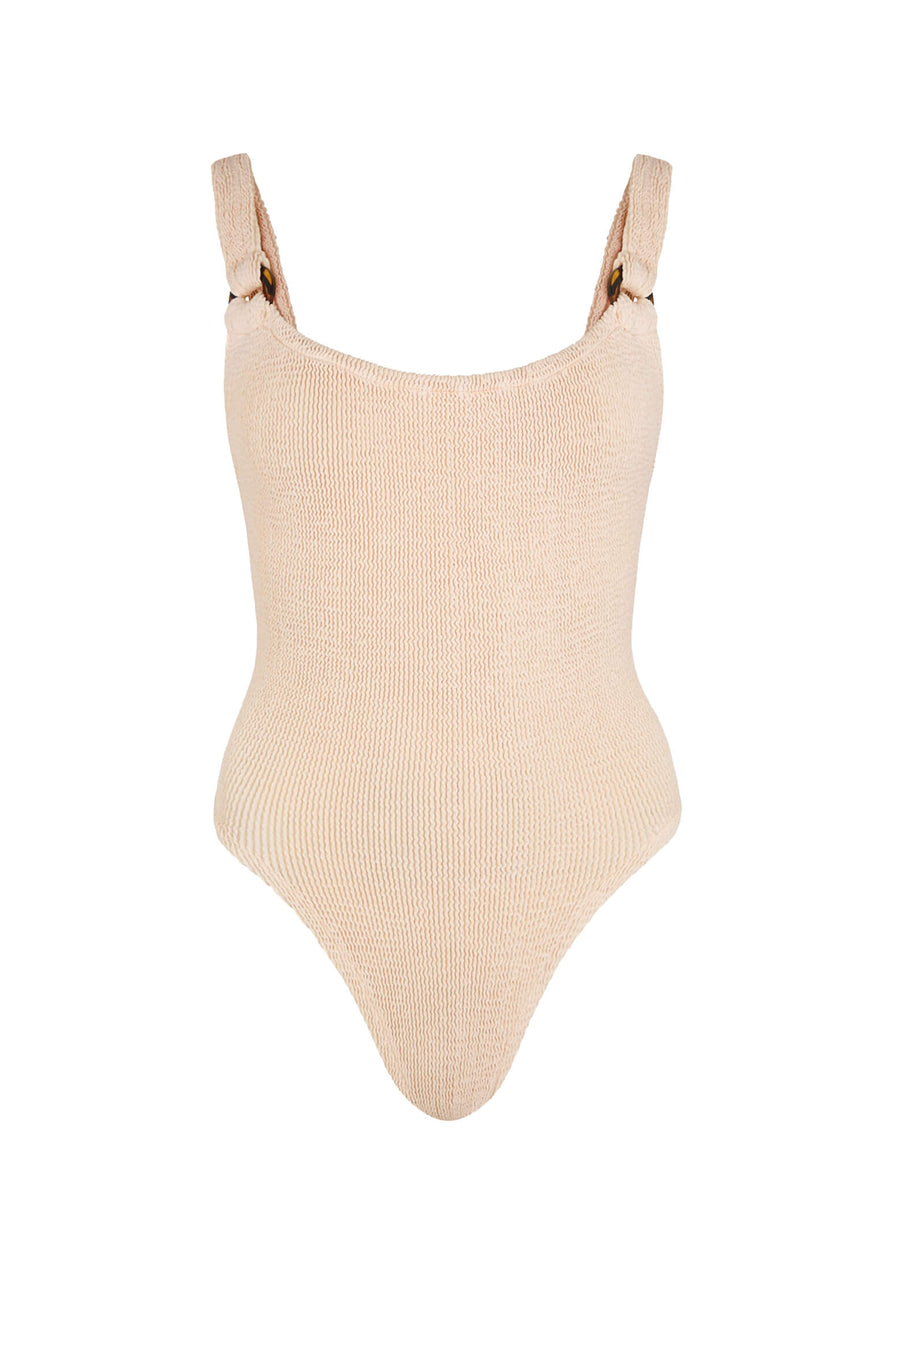 Hunza G Domino Swim in Nude from The New Trend